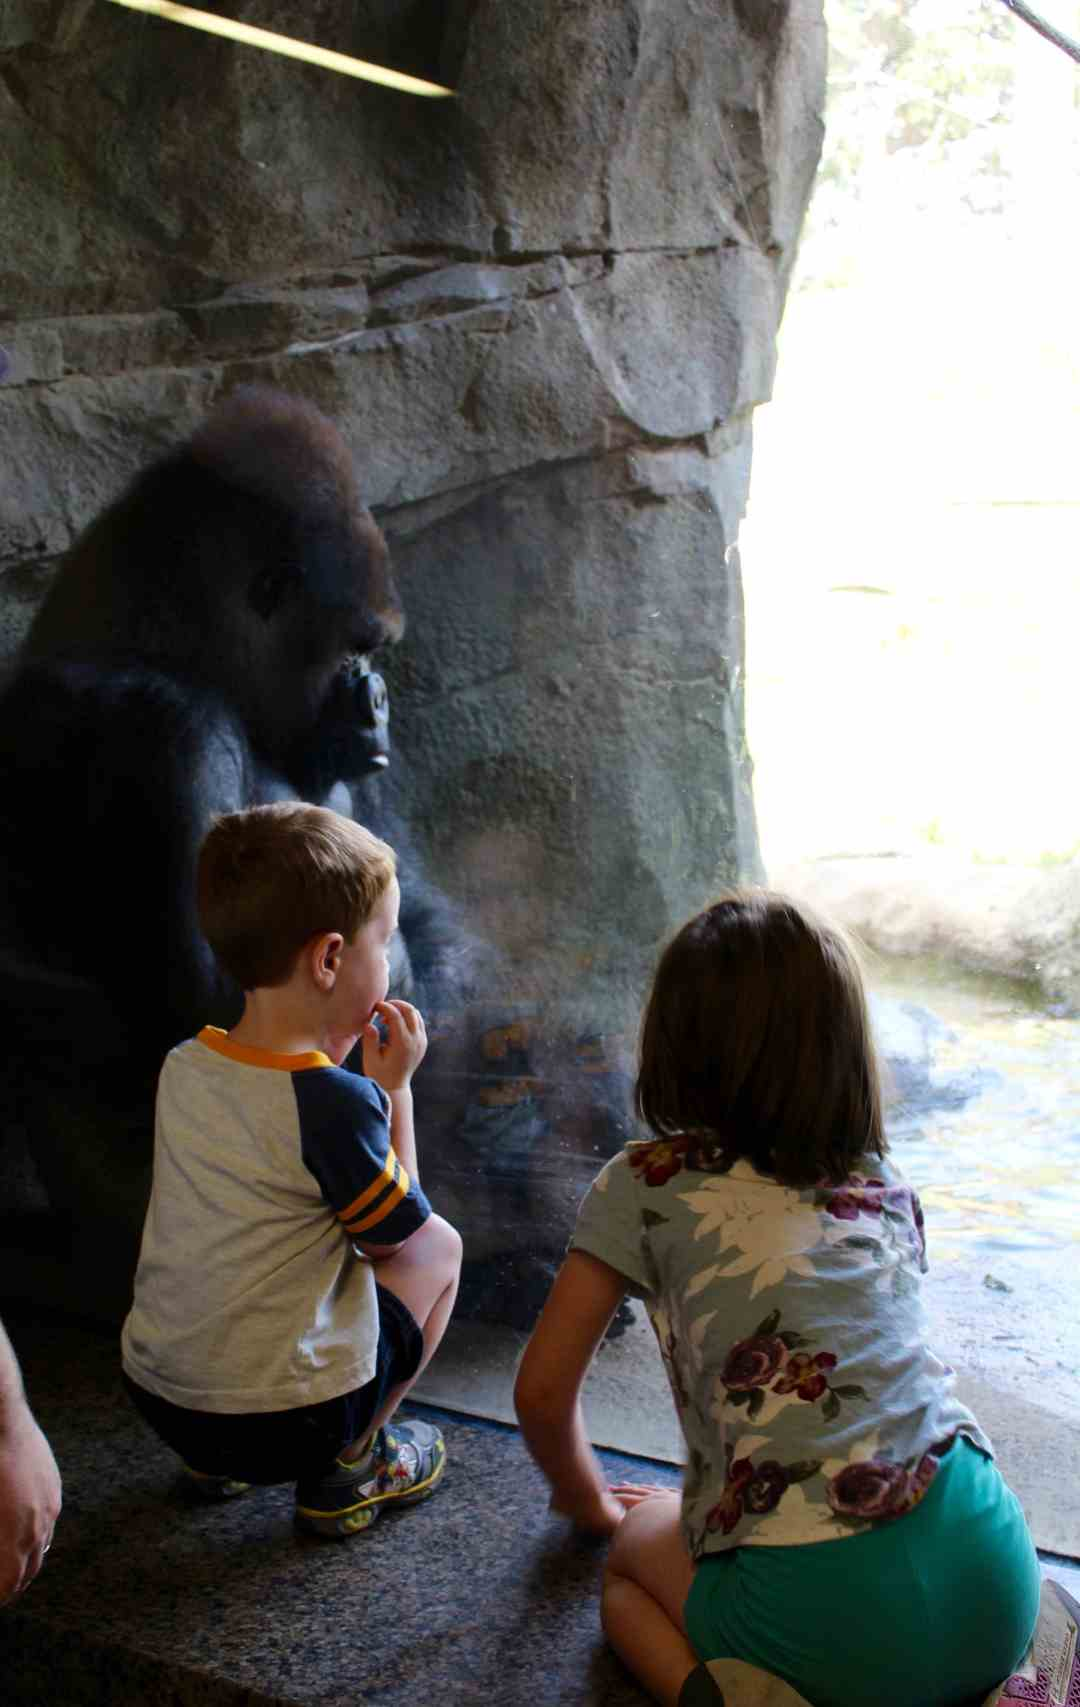 Gorilla's at the Como Zoo